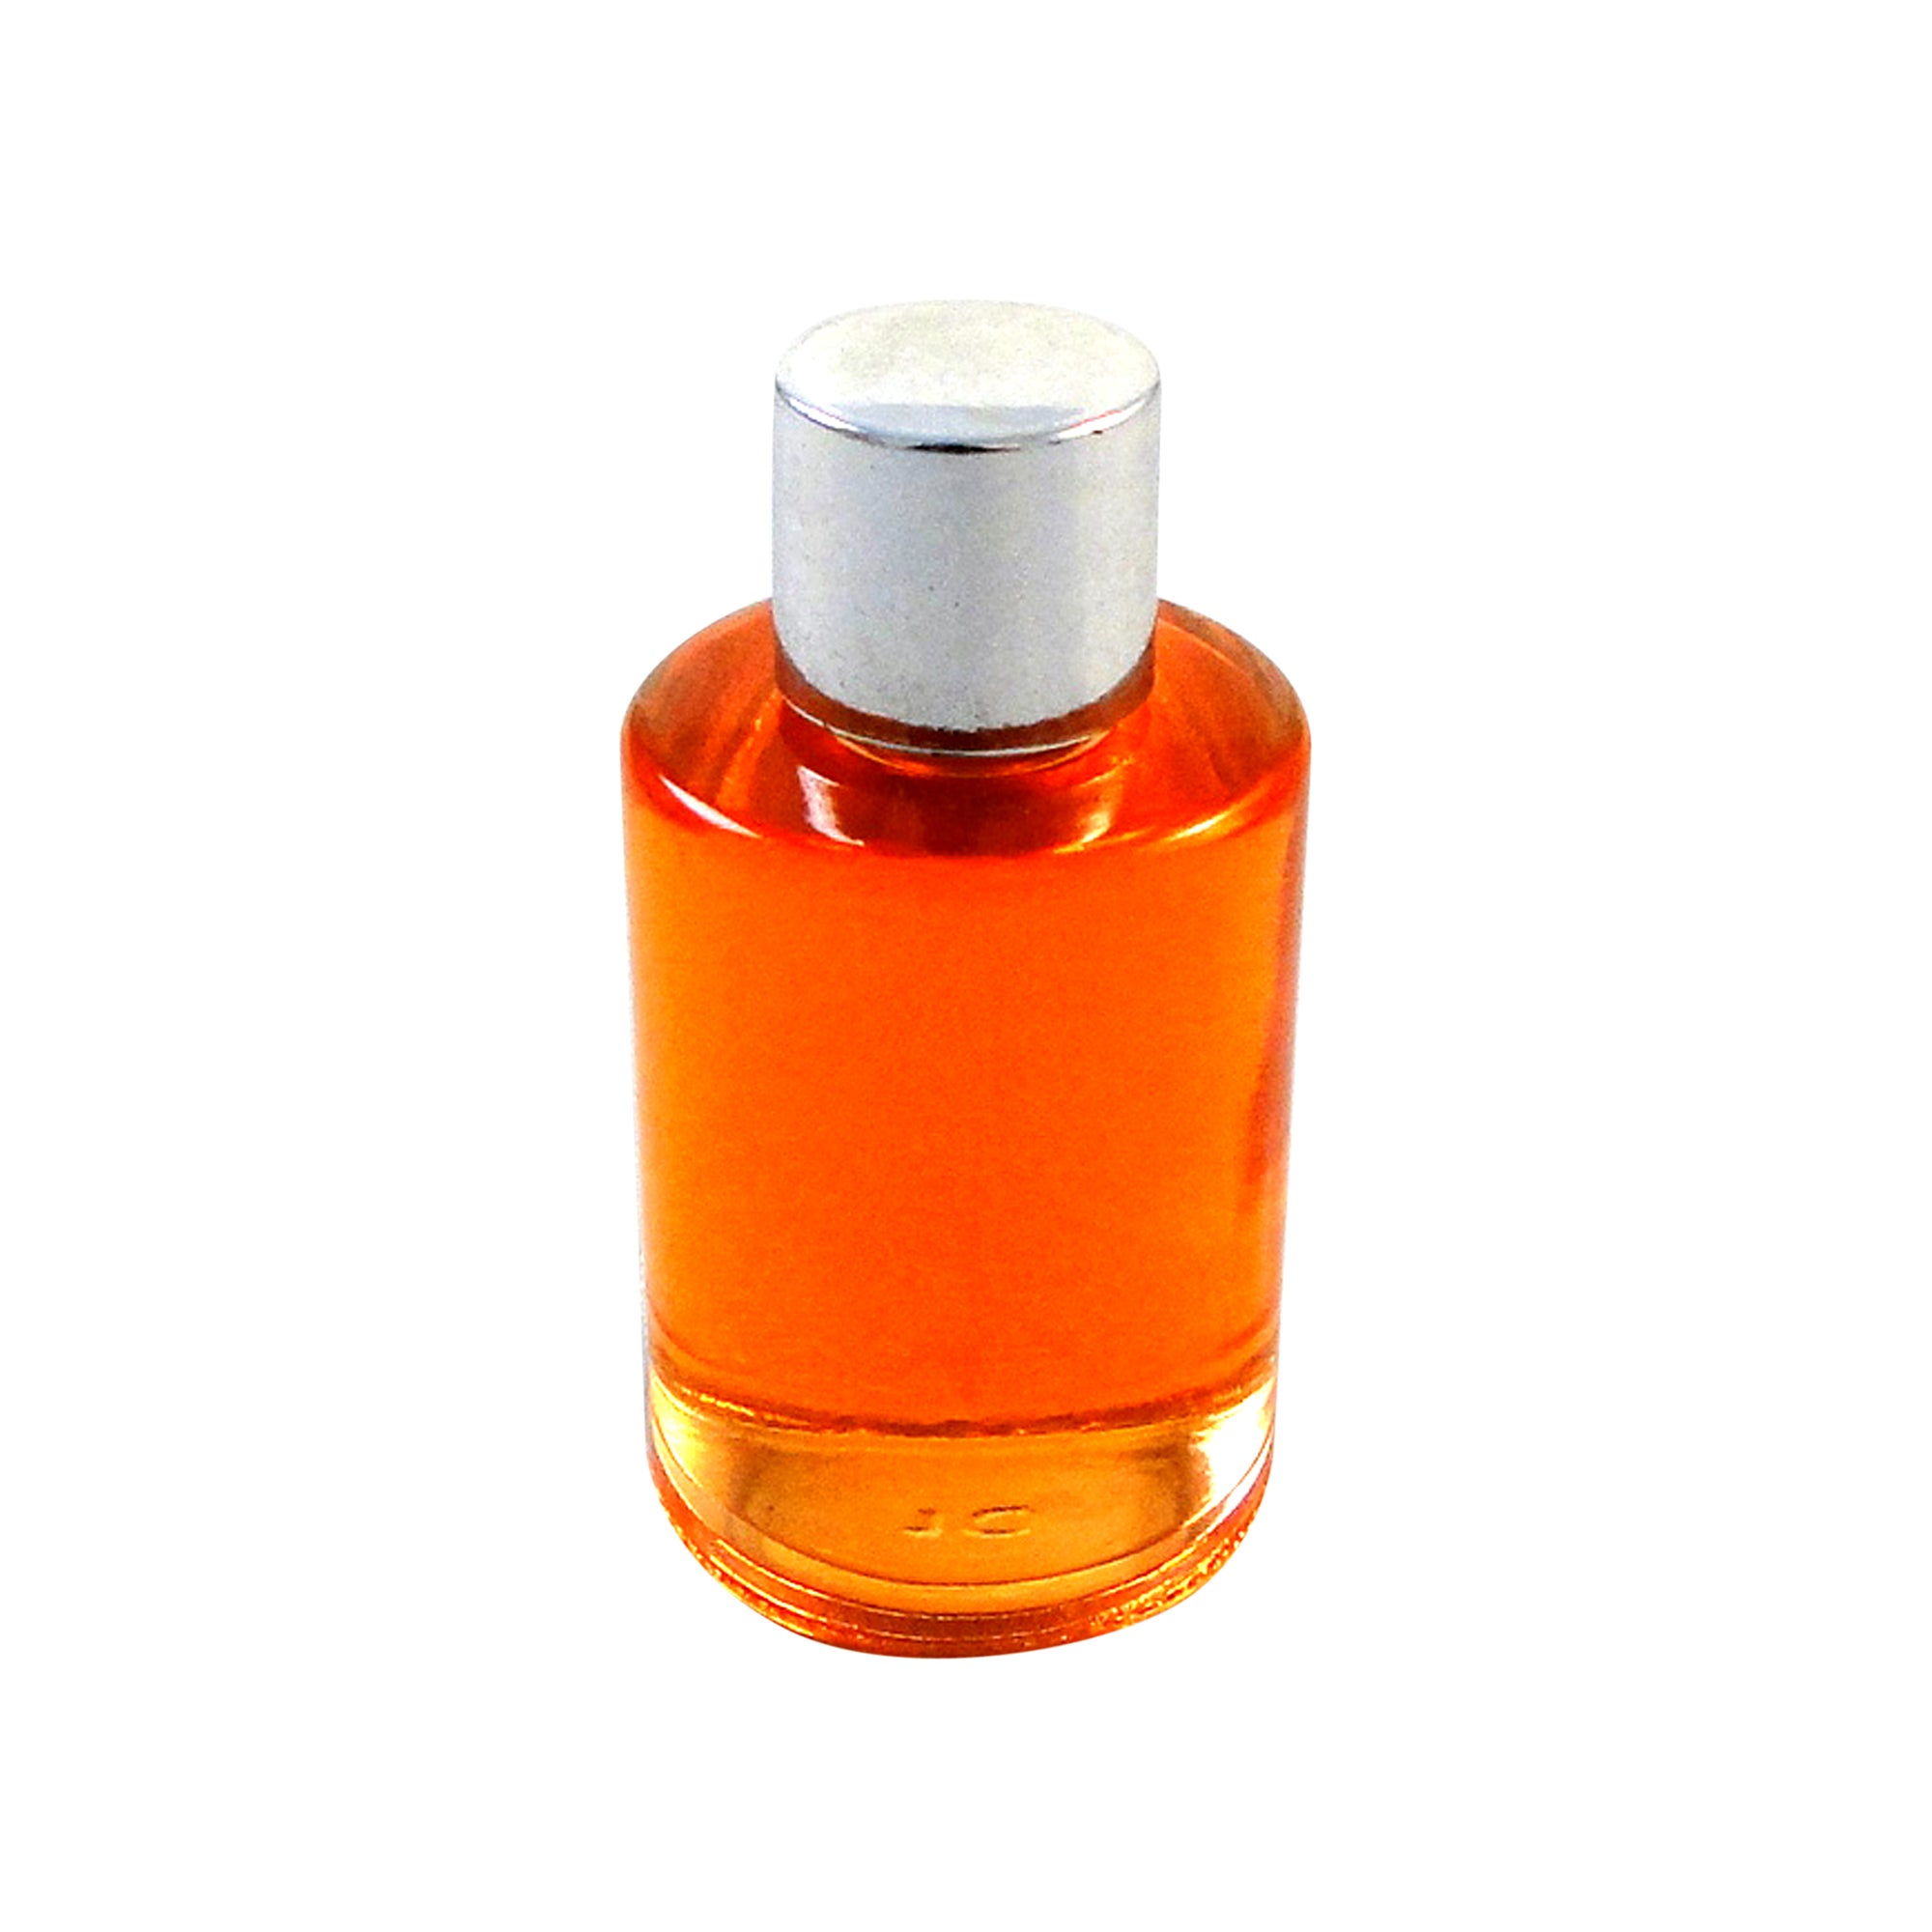 Home Fragrance Vanilla and Amber 15ml Refresher Oil